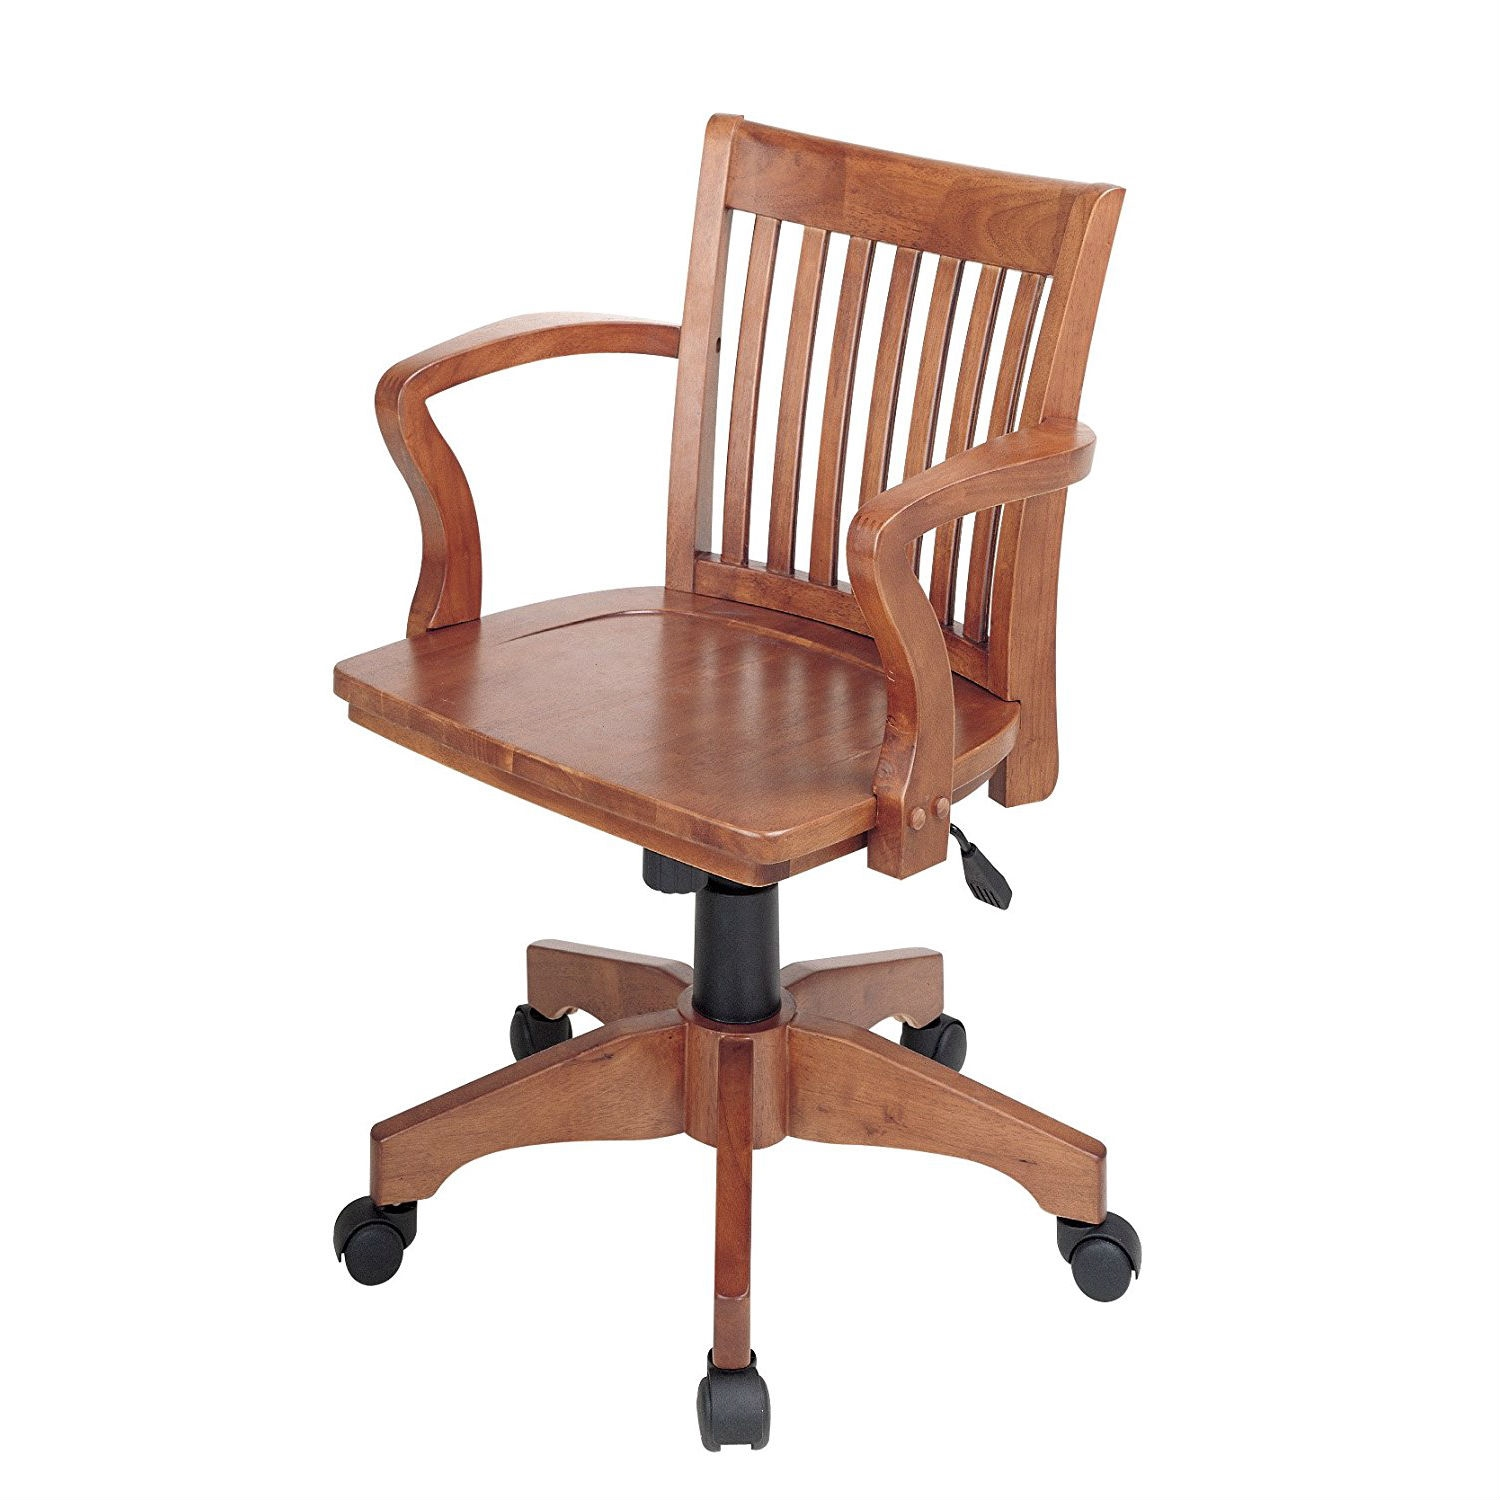 Exceptionnel Classic Wooden Bankers Chair With Wood Seat And Arms